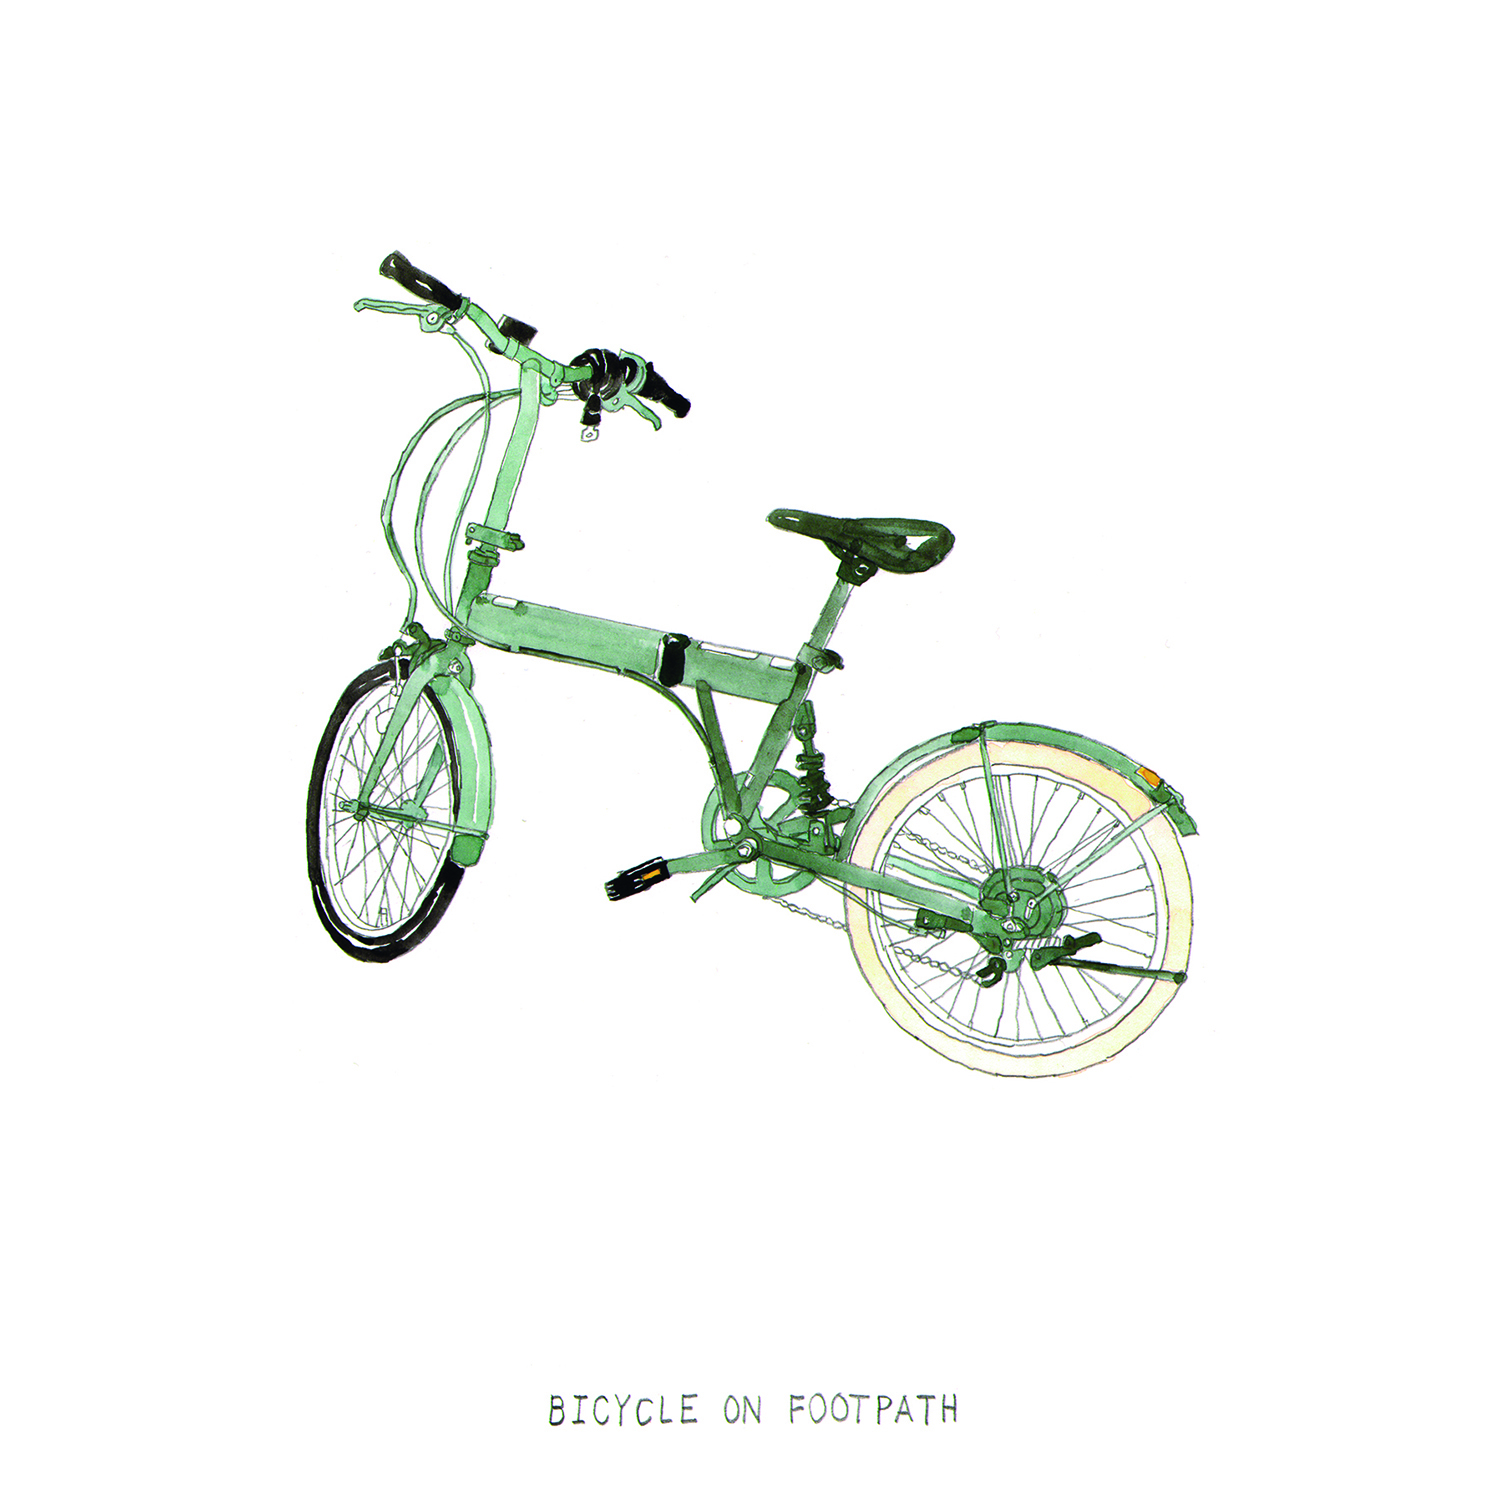 japan bicycle bike illustration 1.jpg